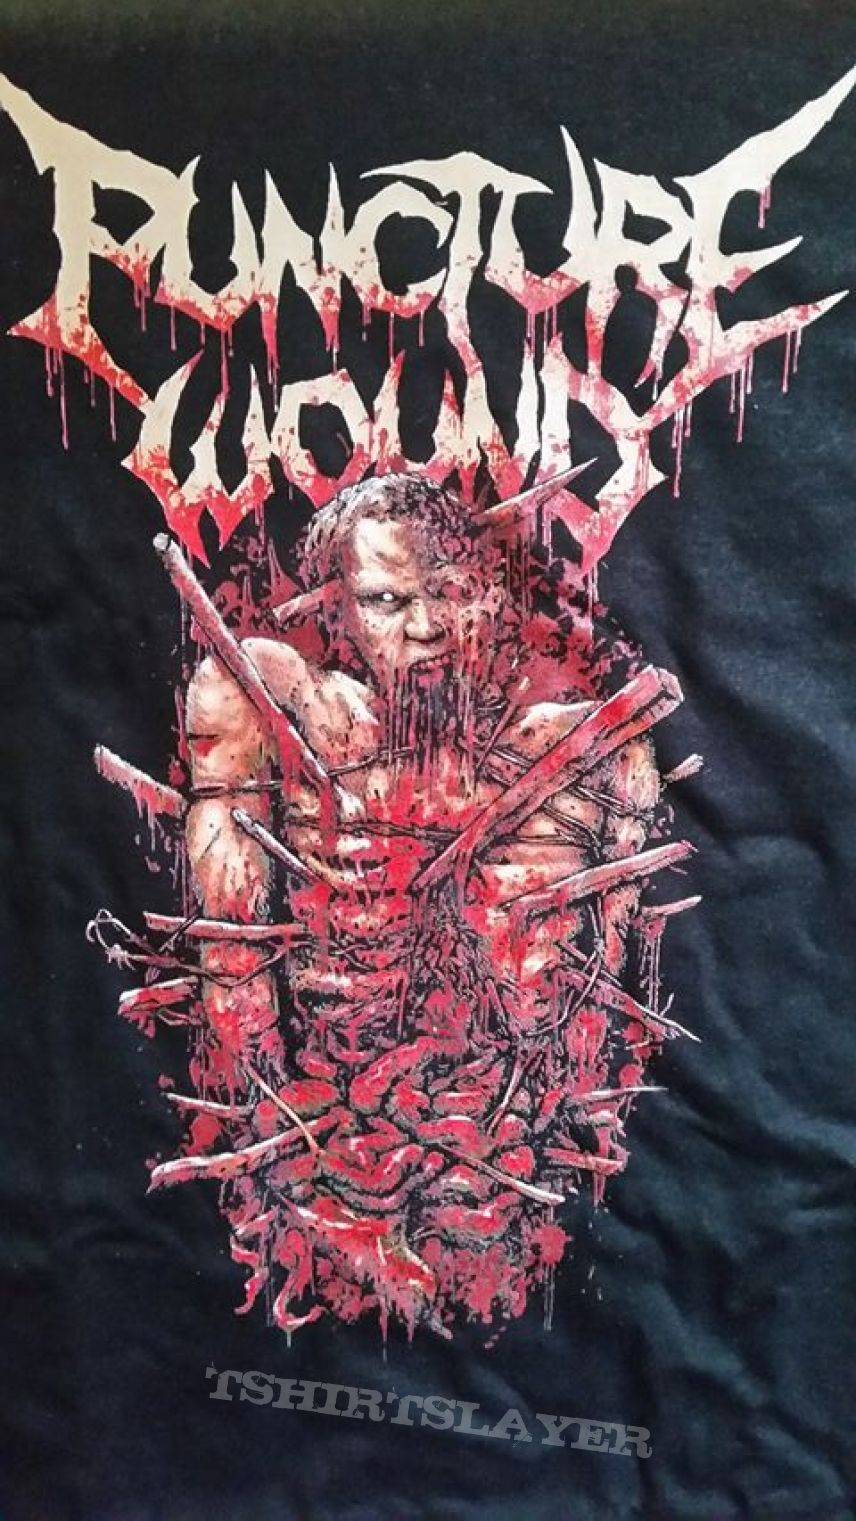 Puncture Wound - Punctured and wounded shirt